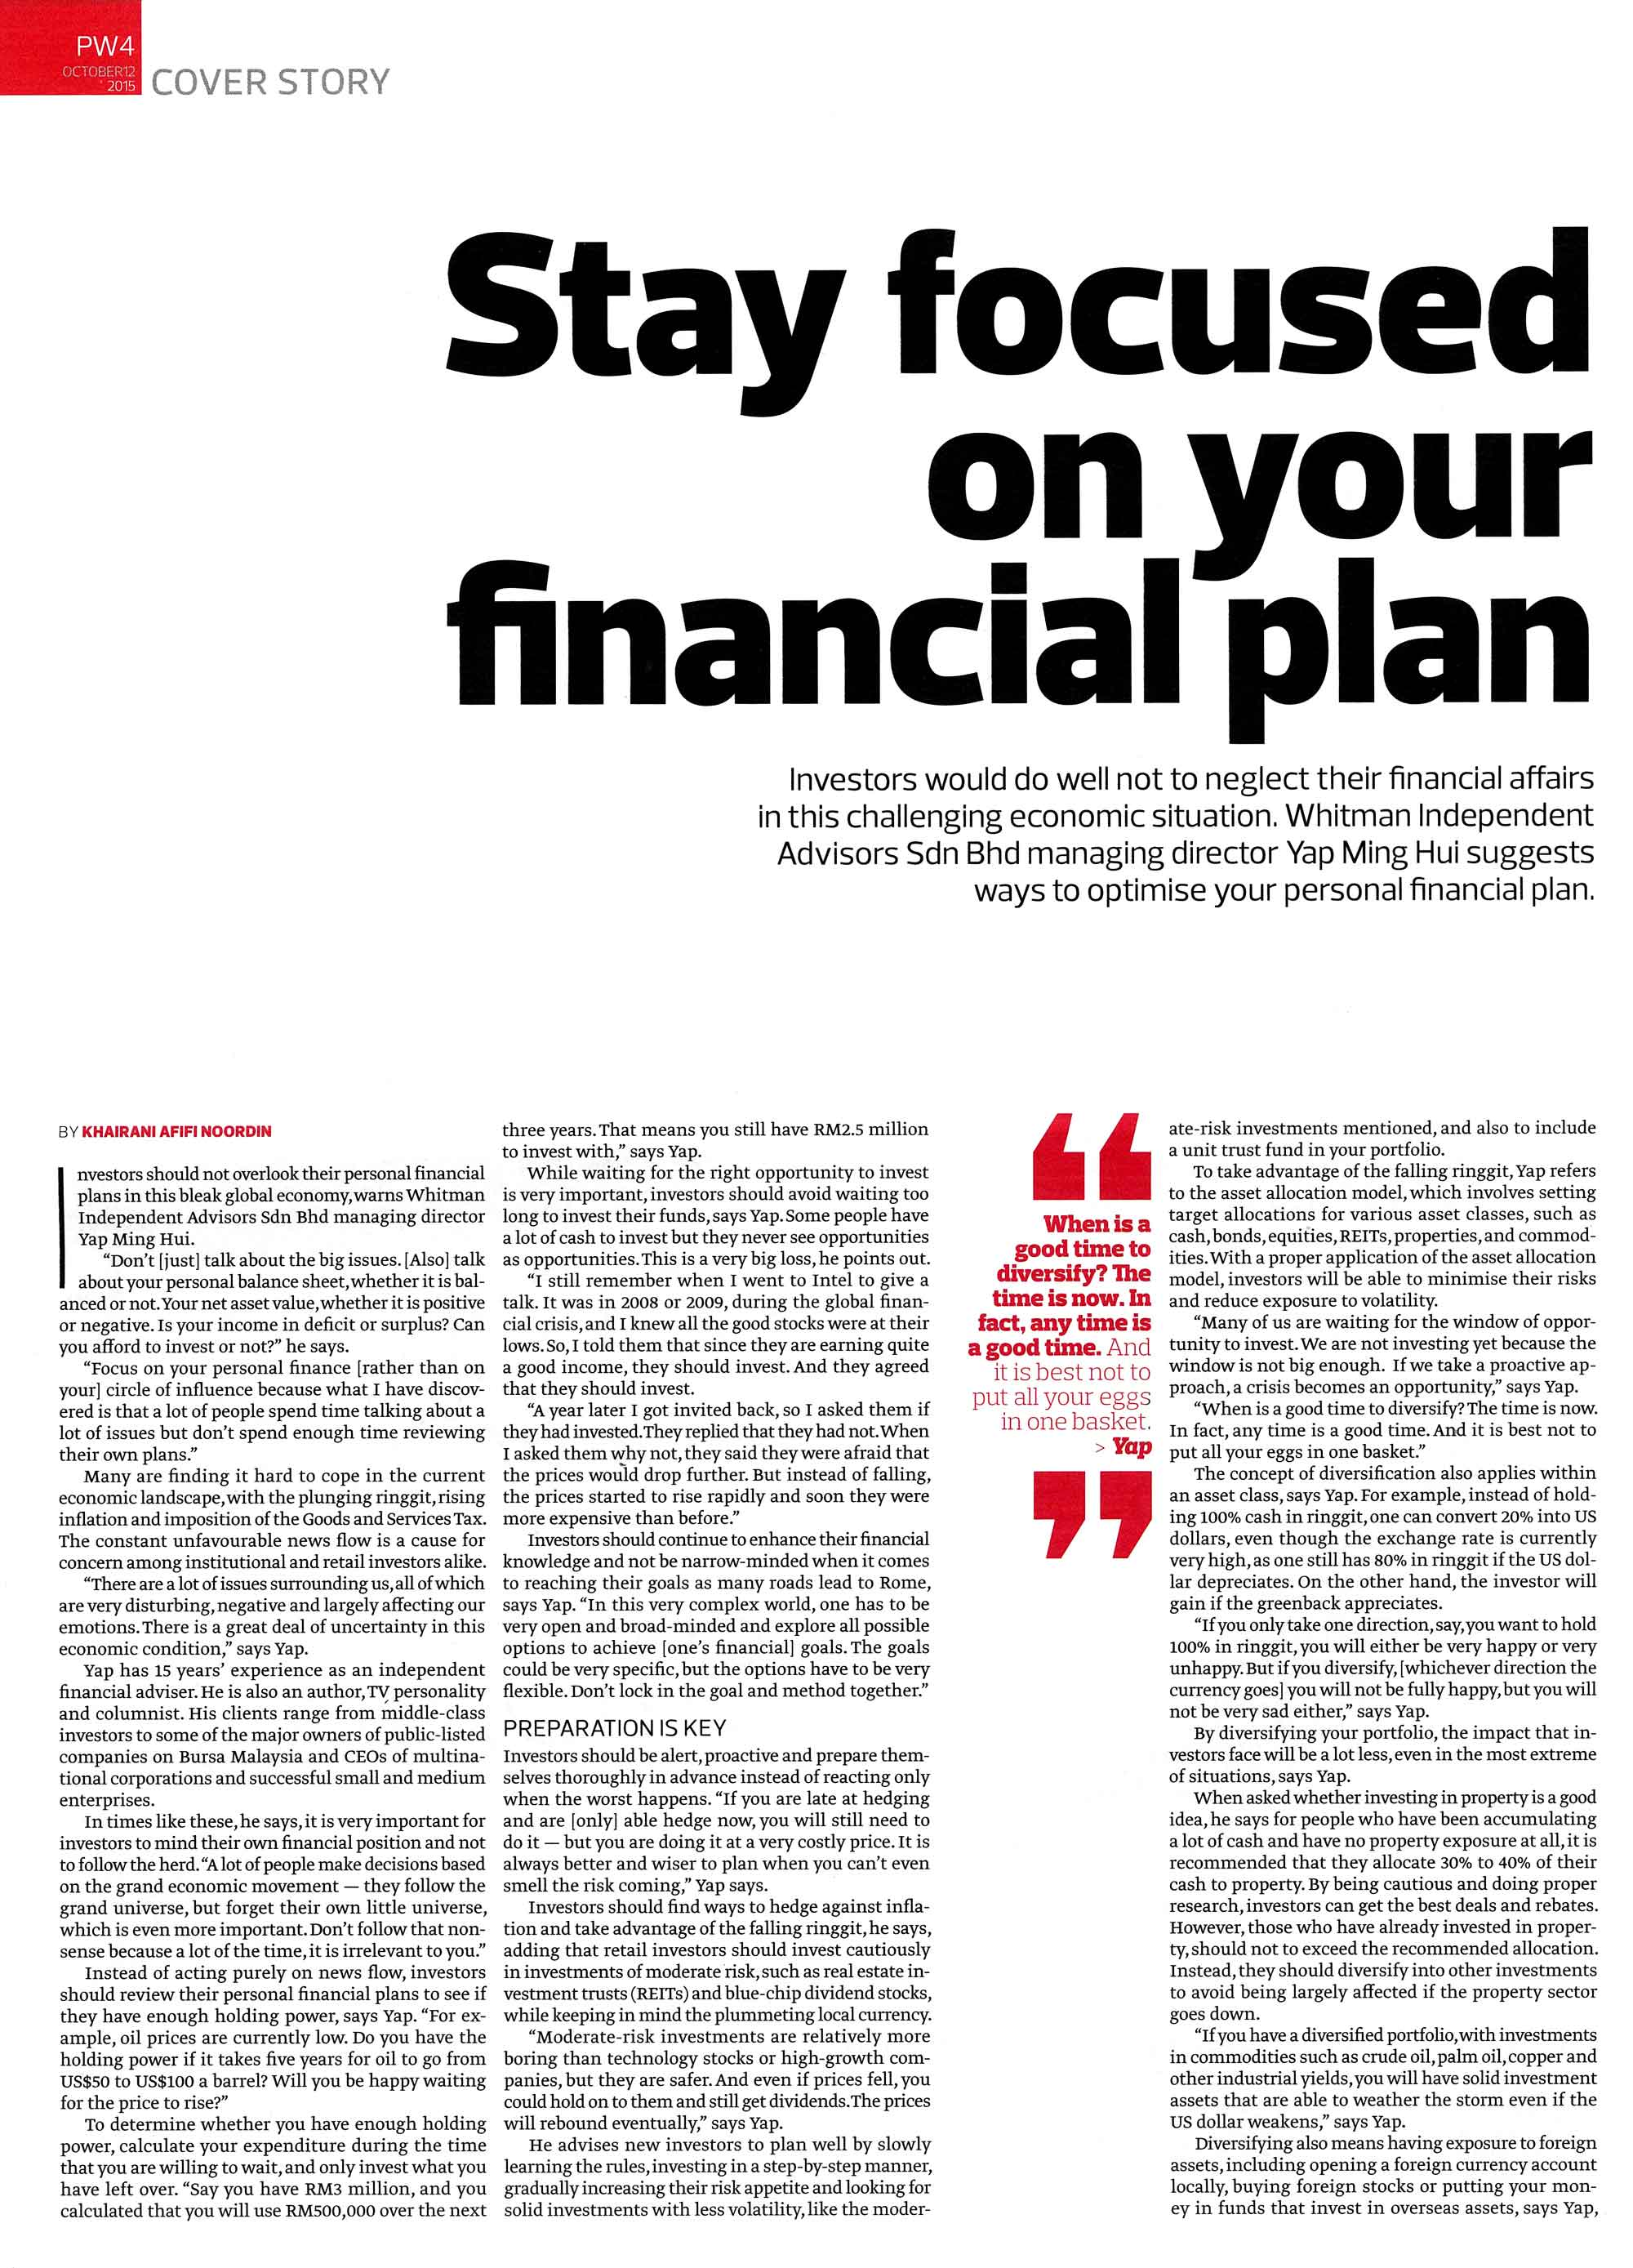 questions great financial advisors ask and Great financial advisors ask great questions make sure your financial planner asks you these seven questions to find one that is the right fit for you.